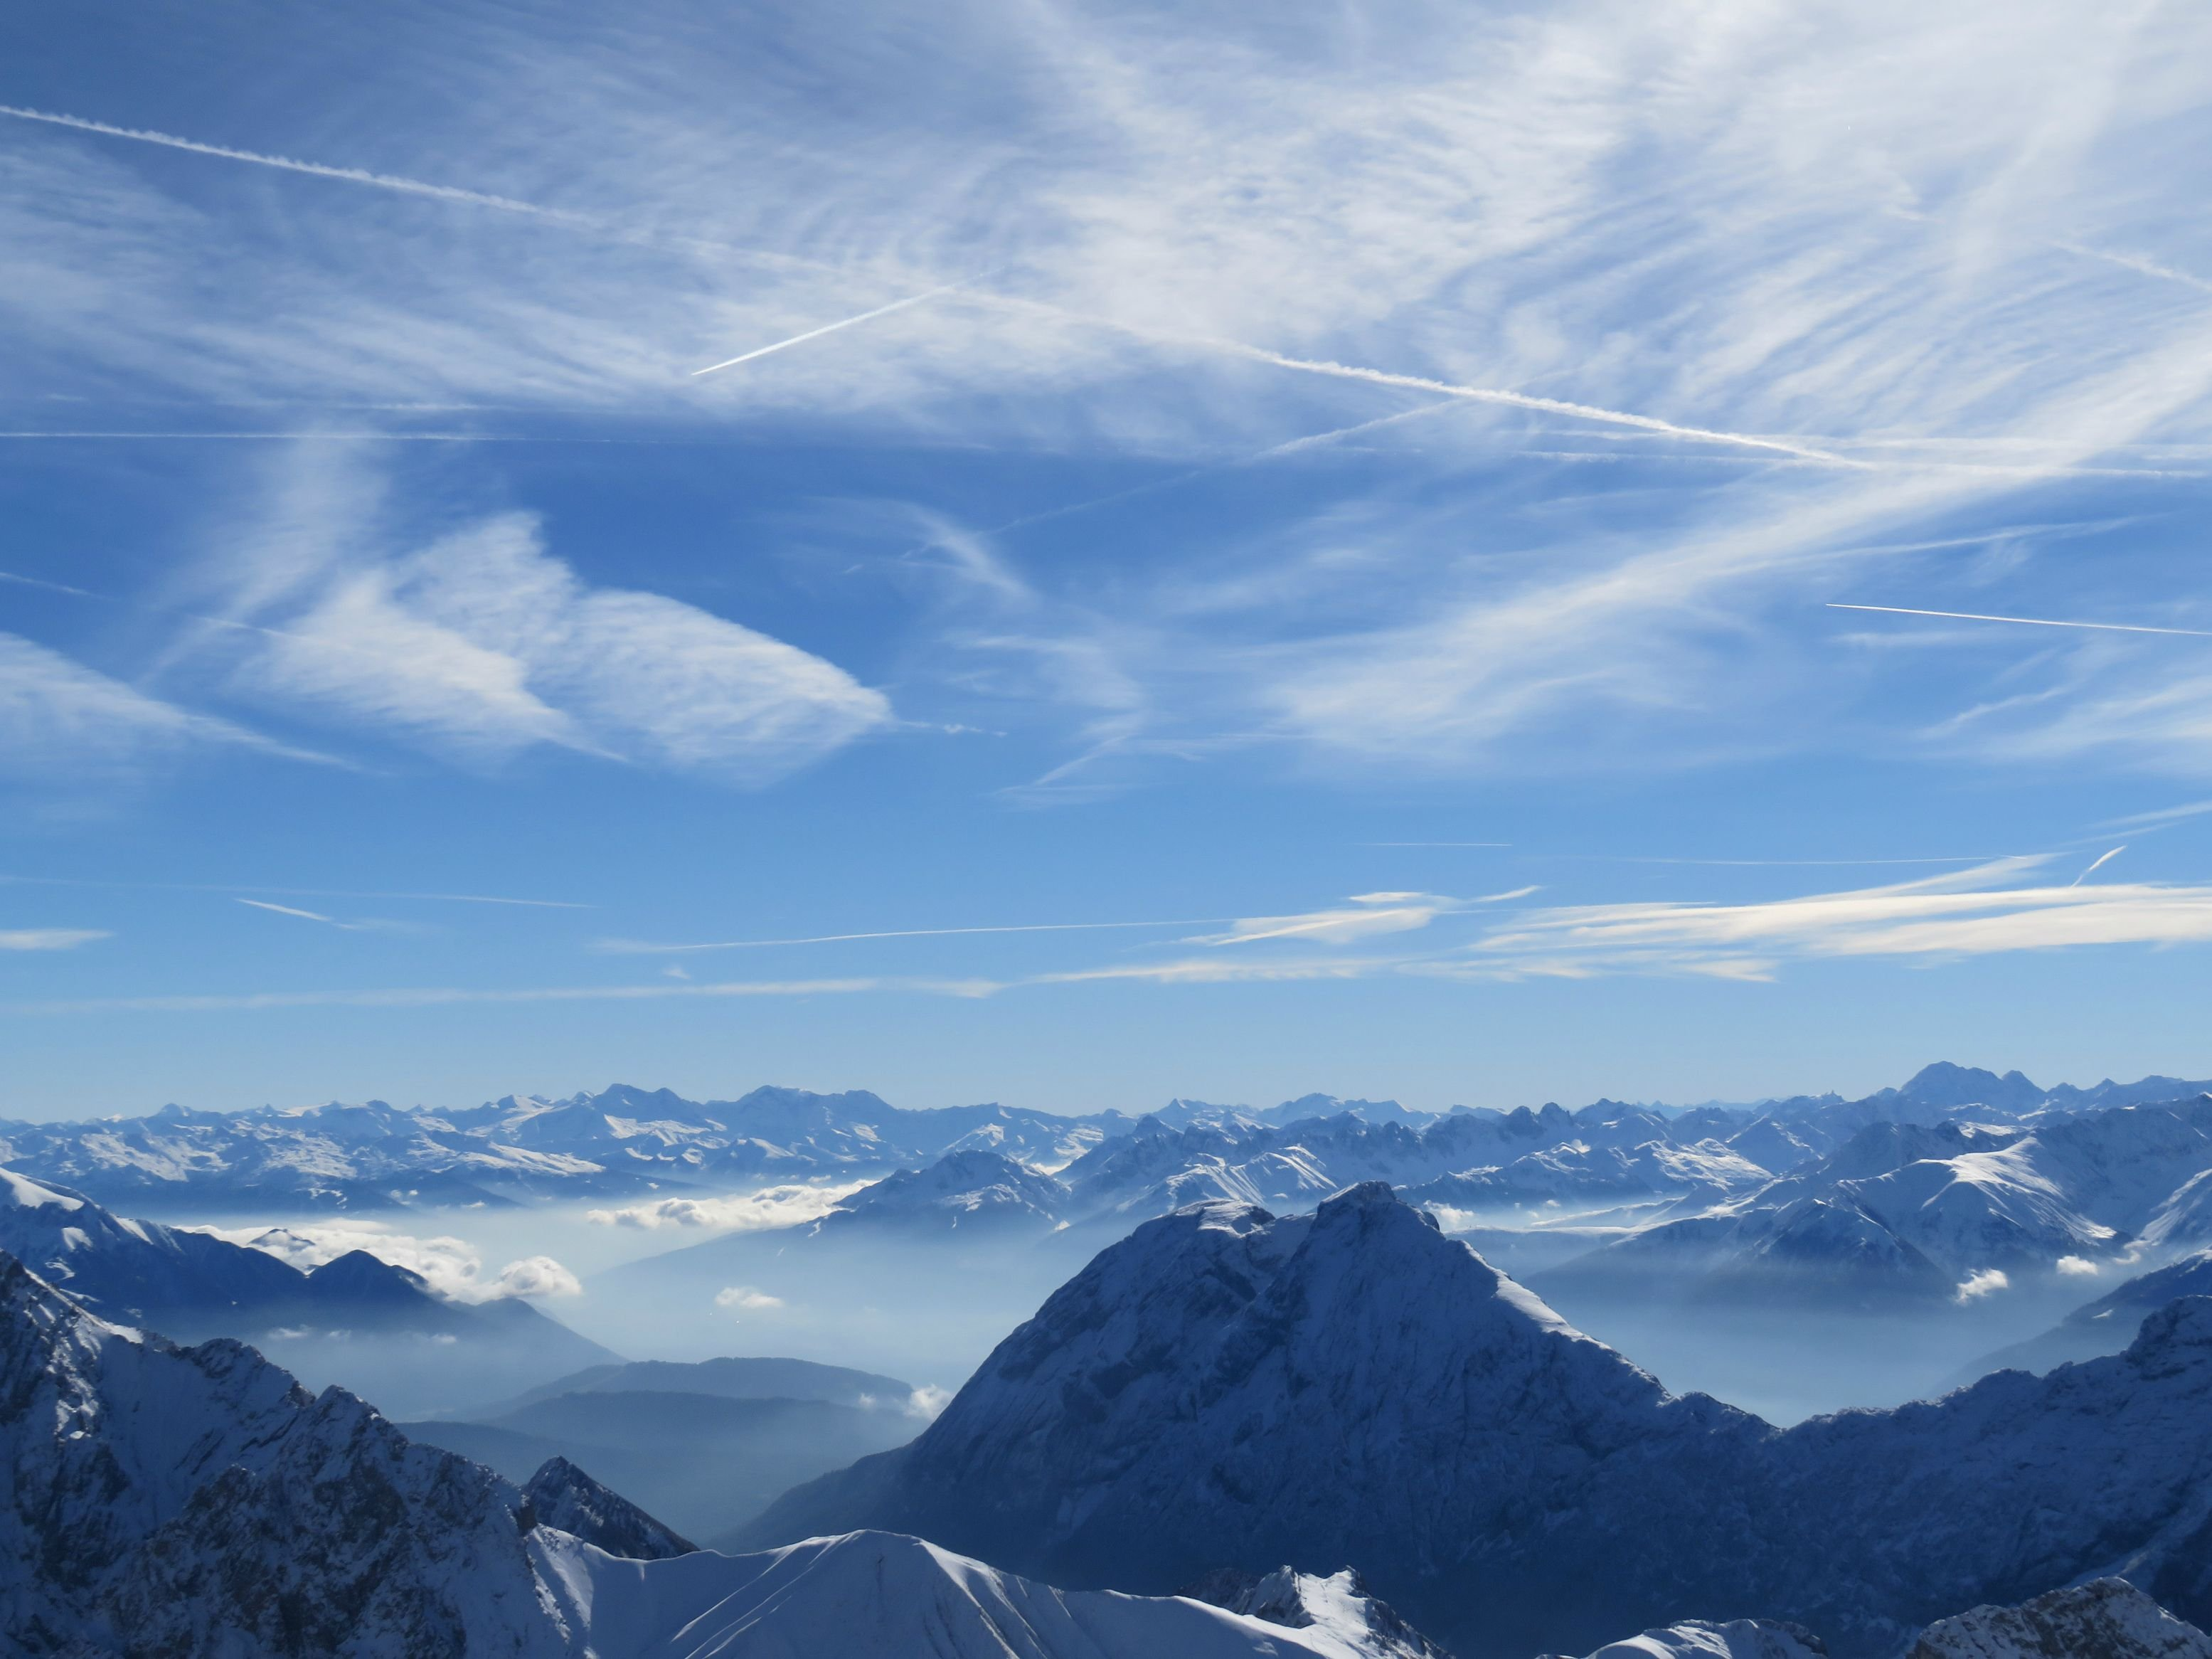 Screensavers, zugspitze, background, photography, mountain, walls ...